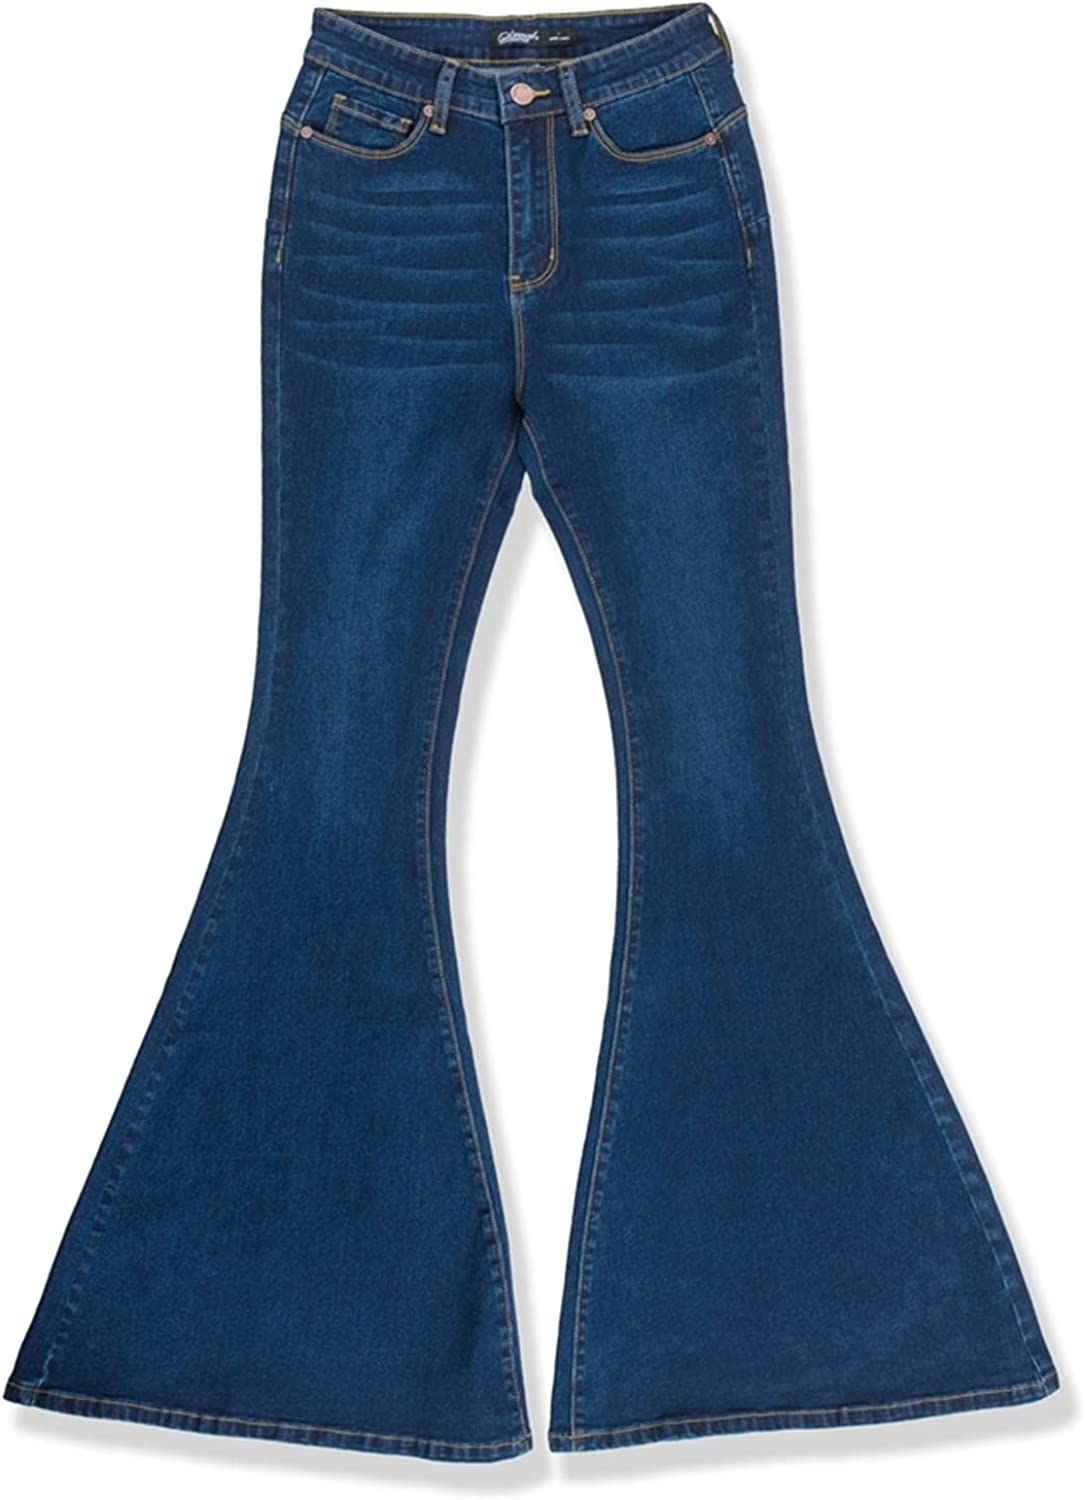 2LUV Women's Stretchy 5 Pocket Distressed Shipping included Waist Skinny Large special price !! Jean High